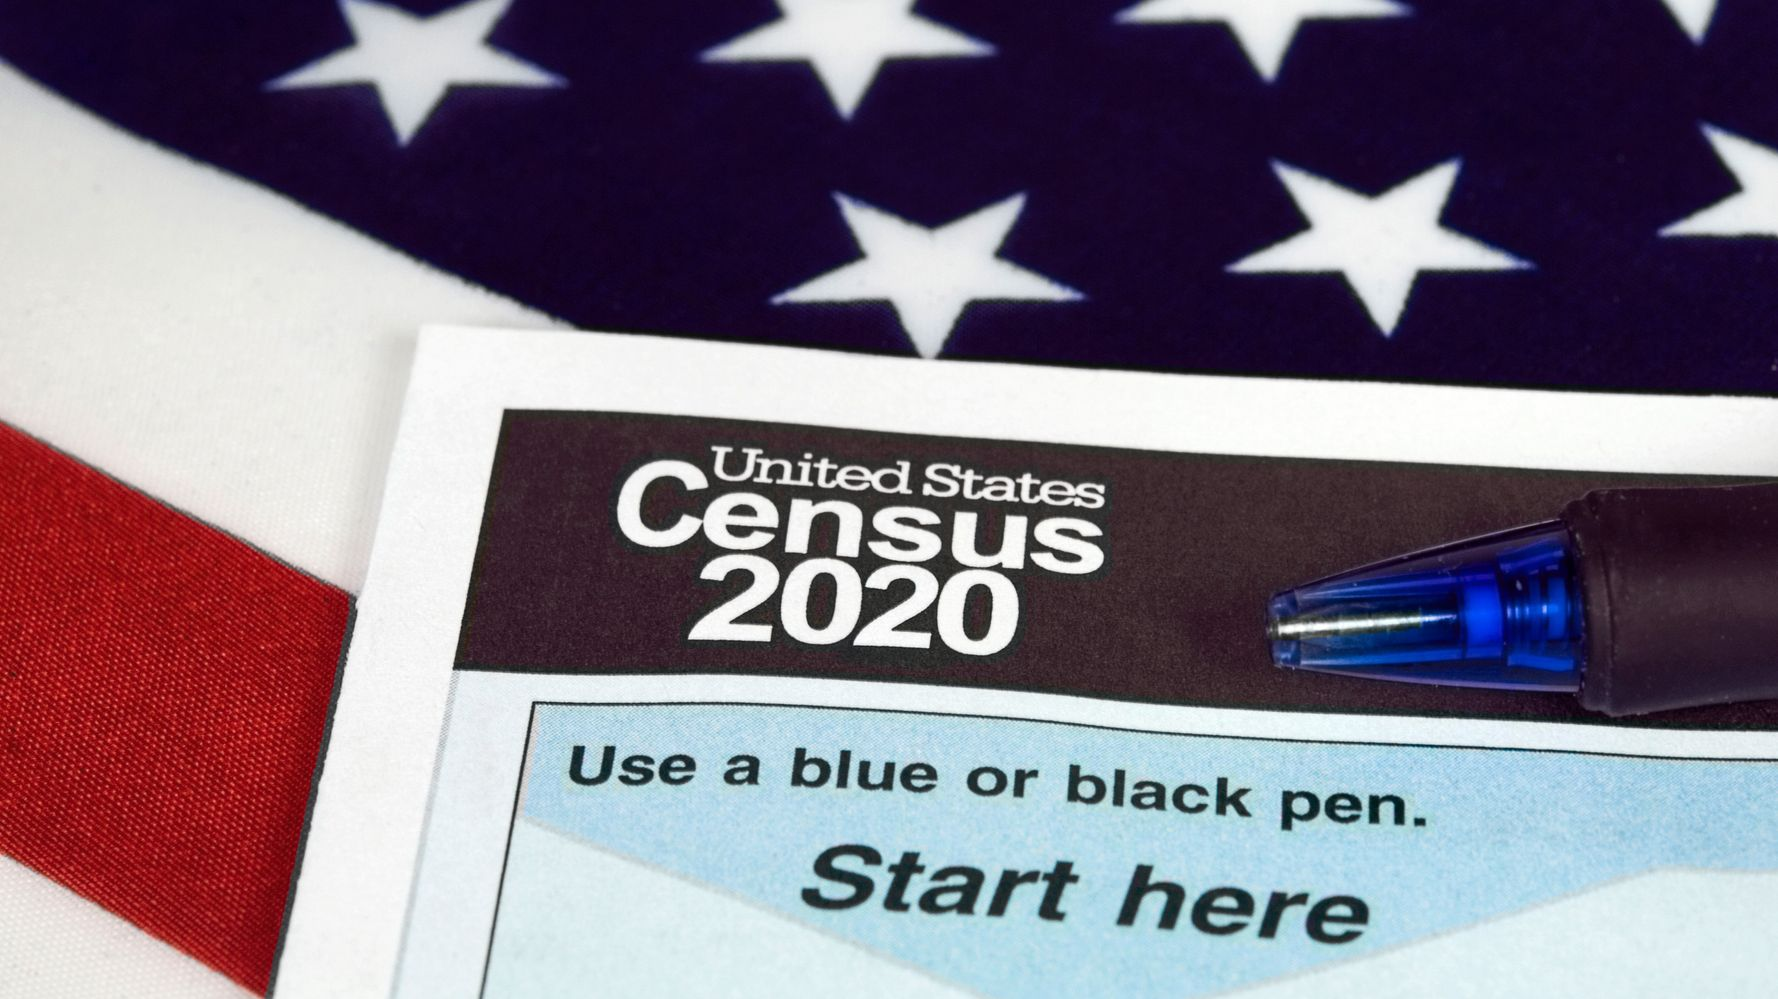 New Email Raises Concern About Trump Commitment To Census